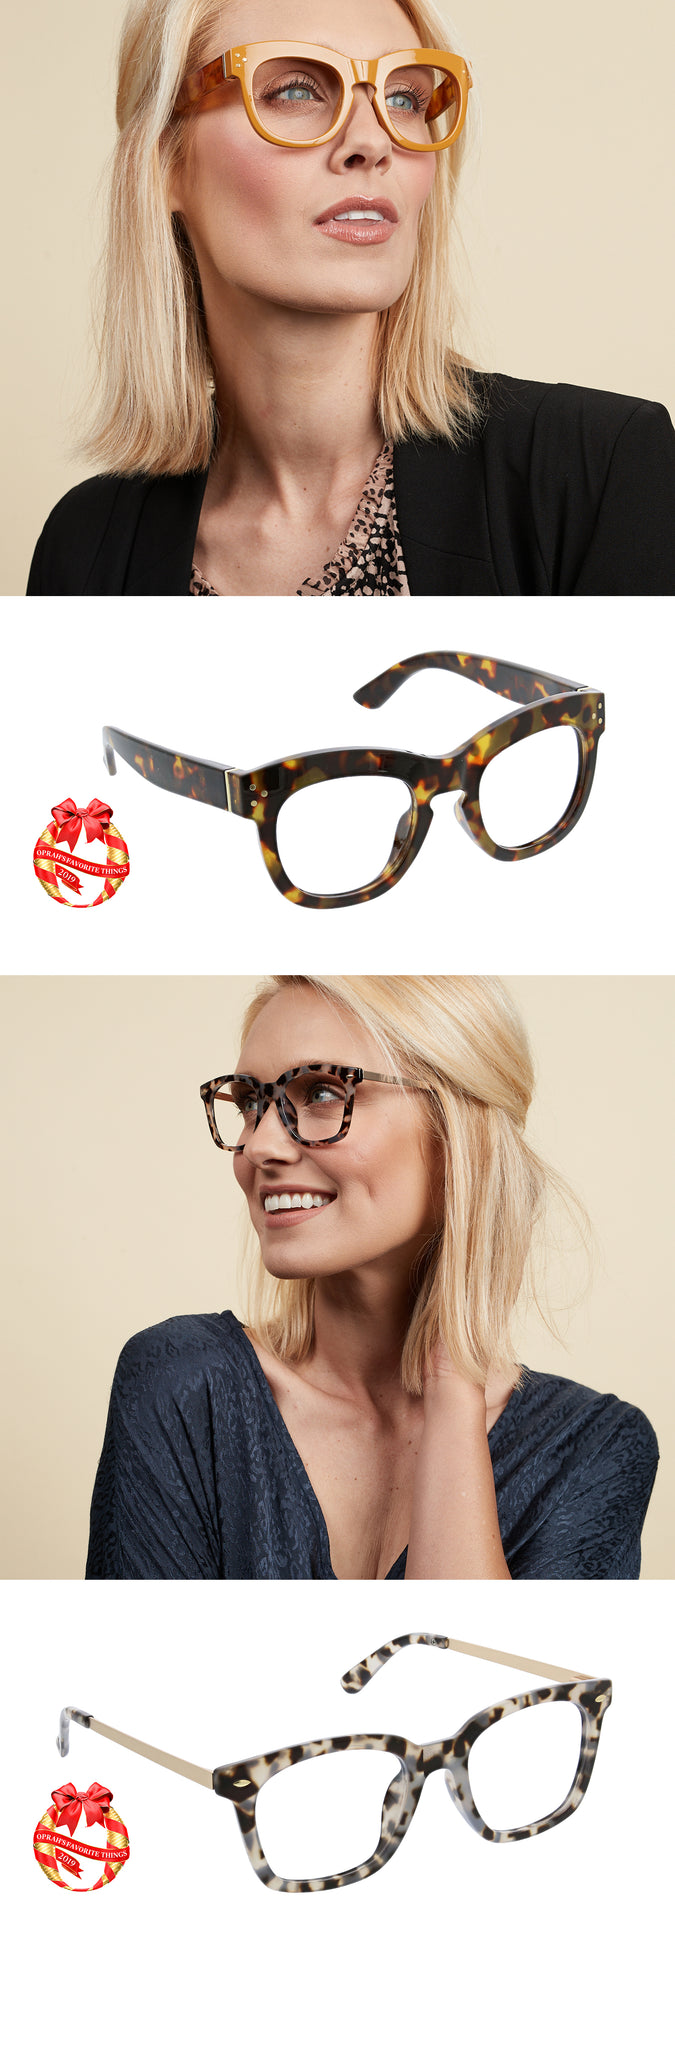 Bravado and Limelight blue light reading glasses by Peepers